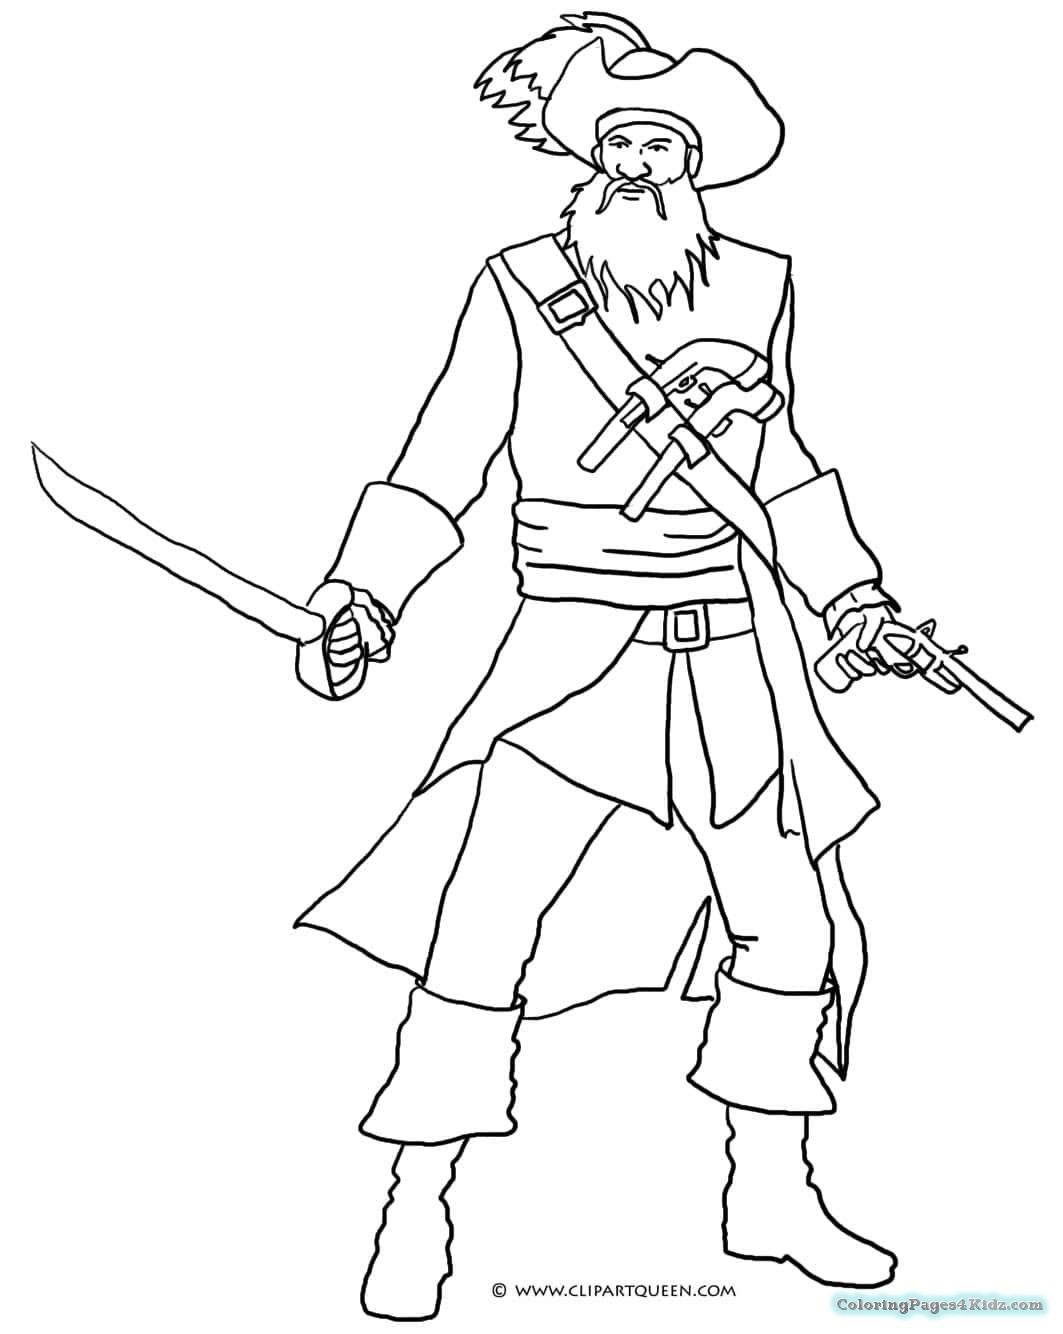 pirate coloring pages for kids printable pirates coloring pages download and print pirates pages kids for printable pirate coloring